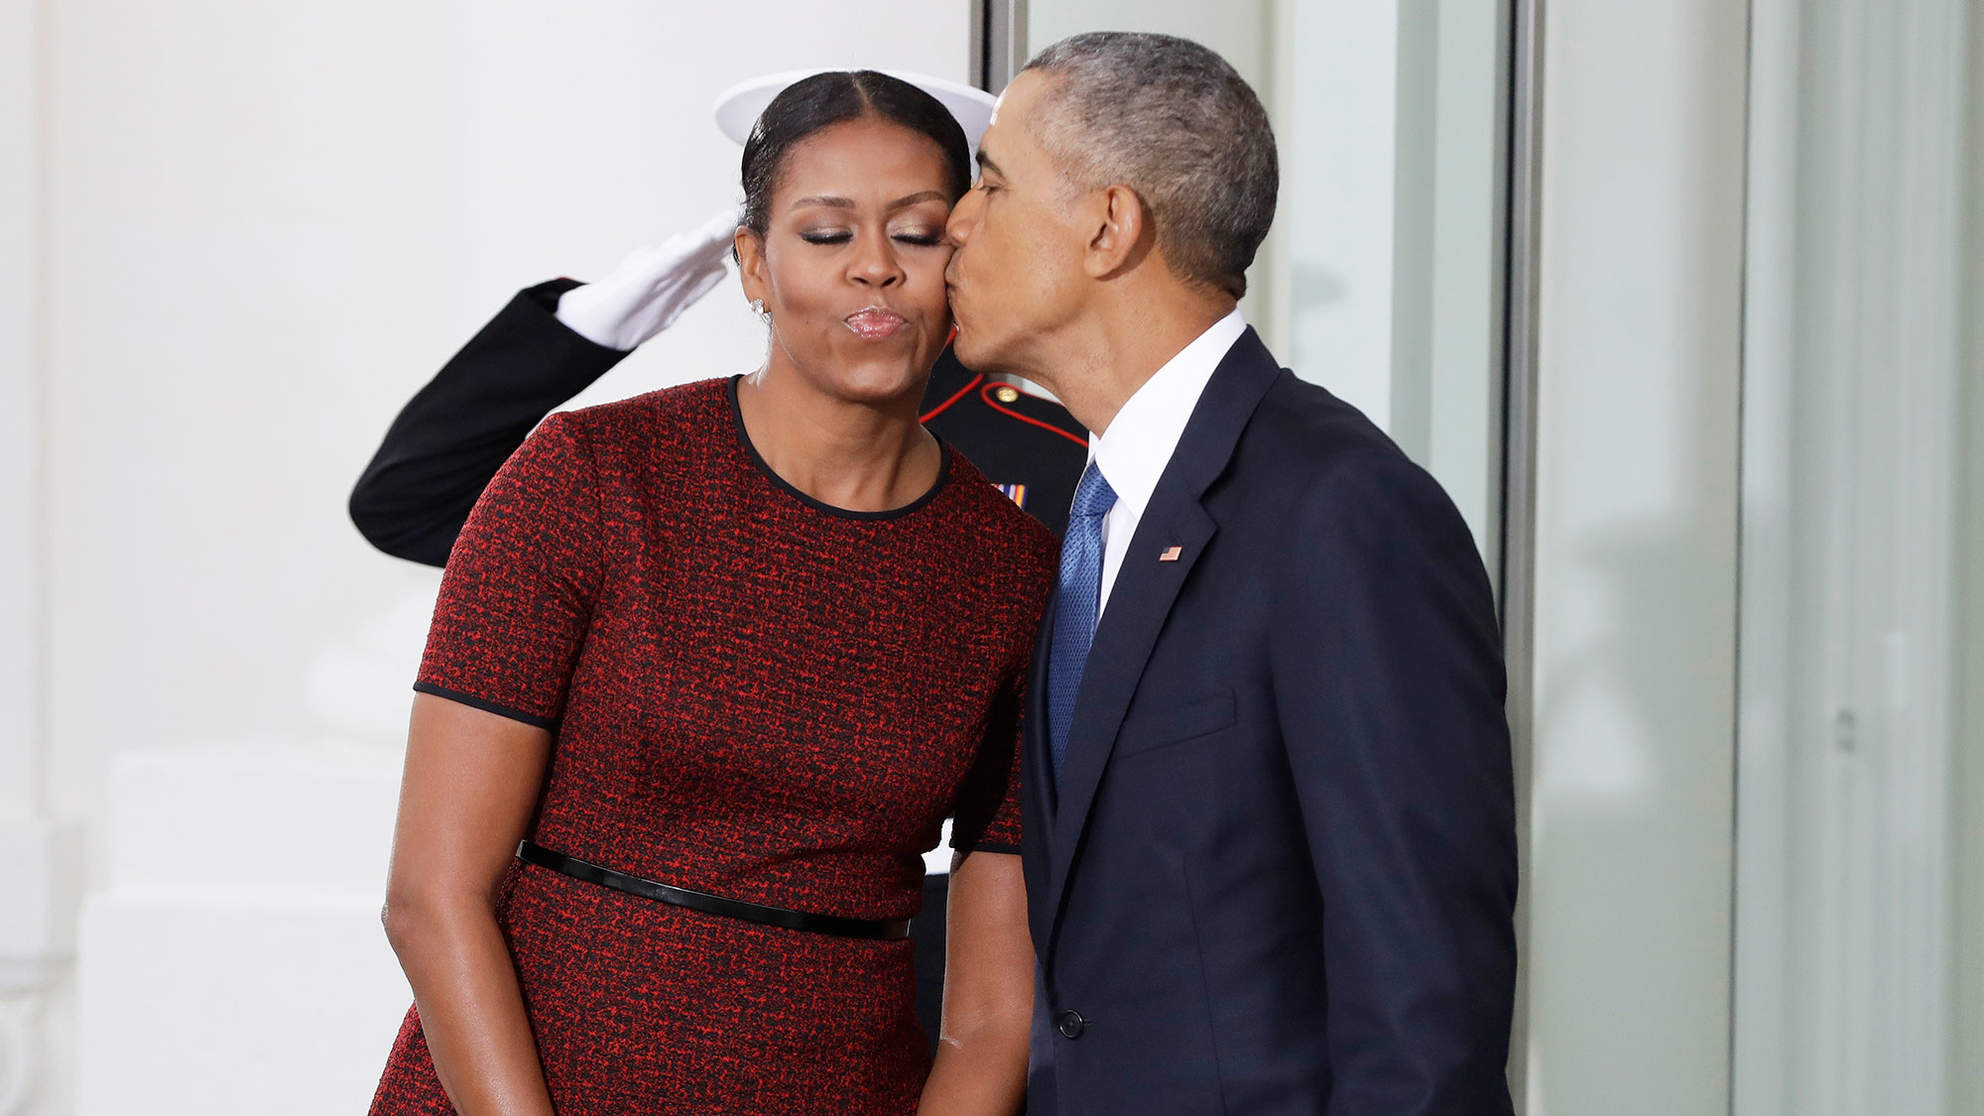 Barack Obama's Birthday Gift and Message to Wife 'Miche' Will Make You Swoon